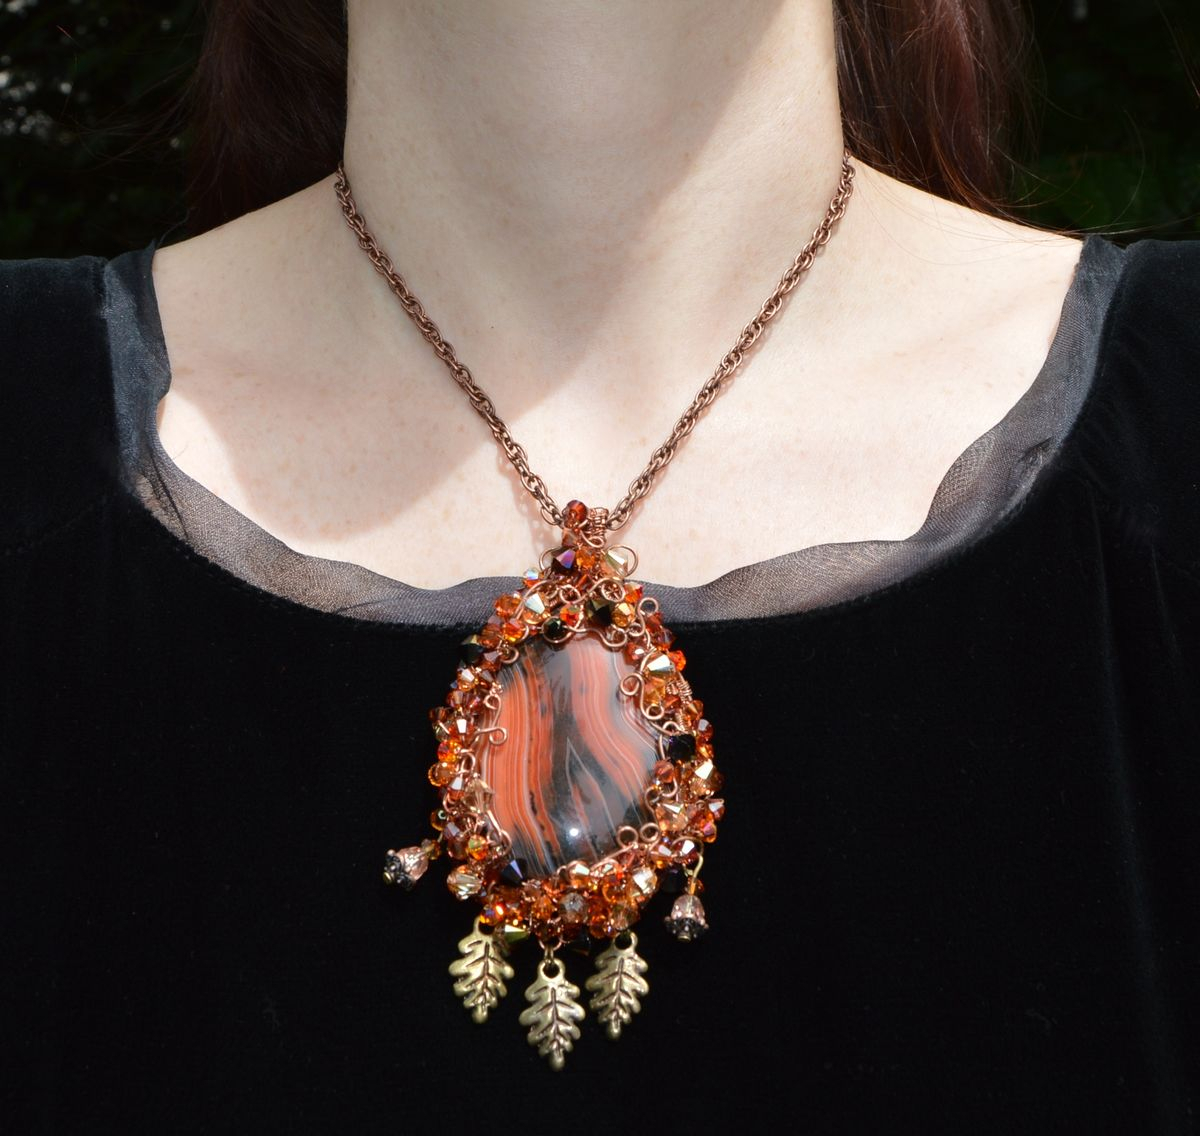 Autumn Leaf Pendant In Fall Colors – Elven Wire Wrapped Crystal Regarding Most Up To Date Multi Colored Crystal Patterns Of Frost Pendant Necklaces (Gallery 23 of 25)